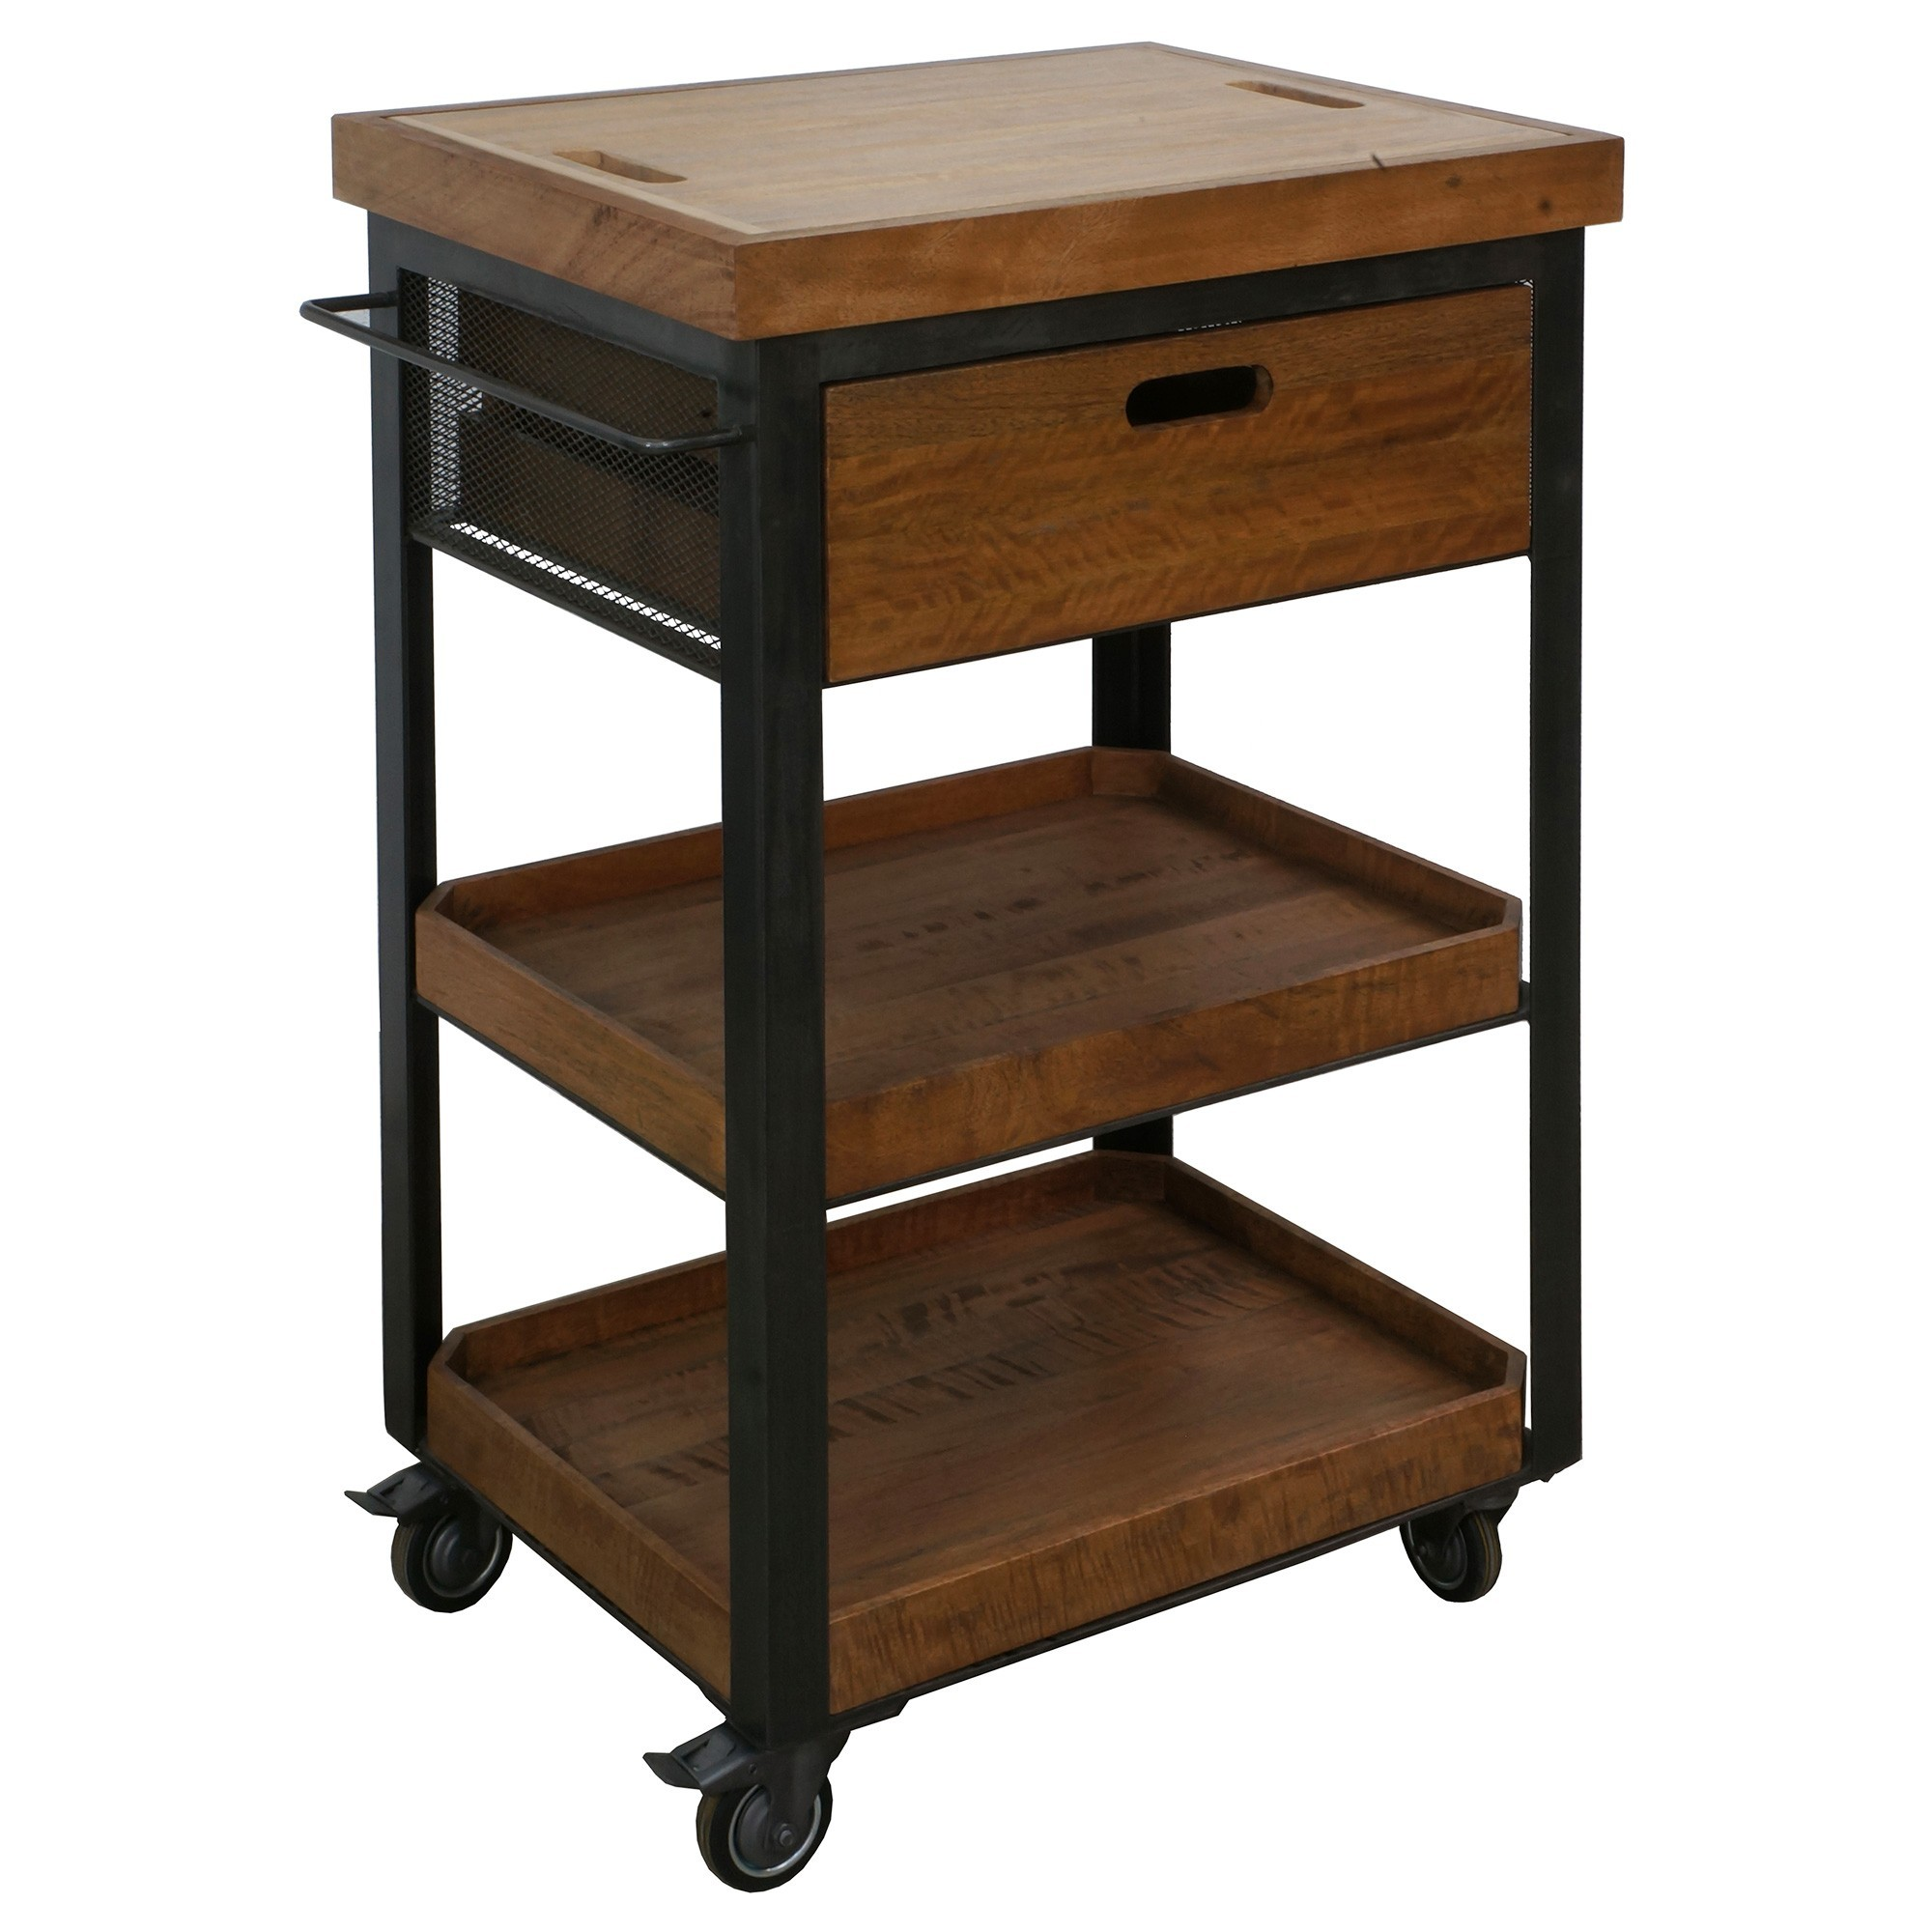 Lamiran Mango Wood & Steel Butchers Block